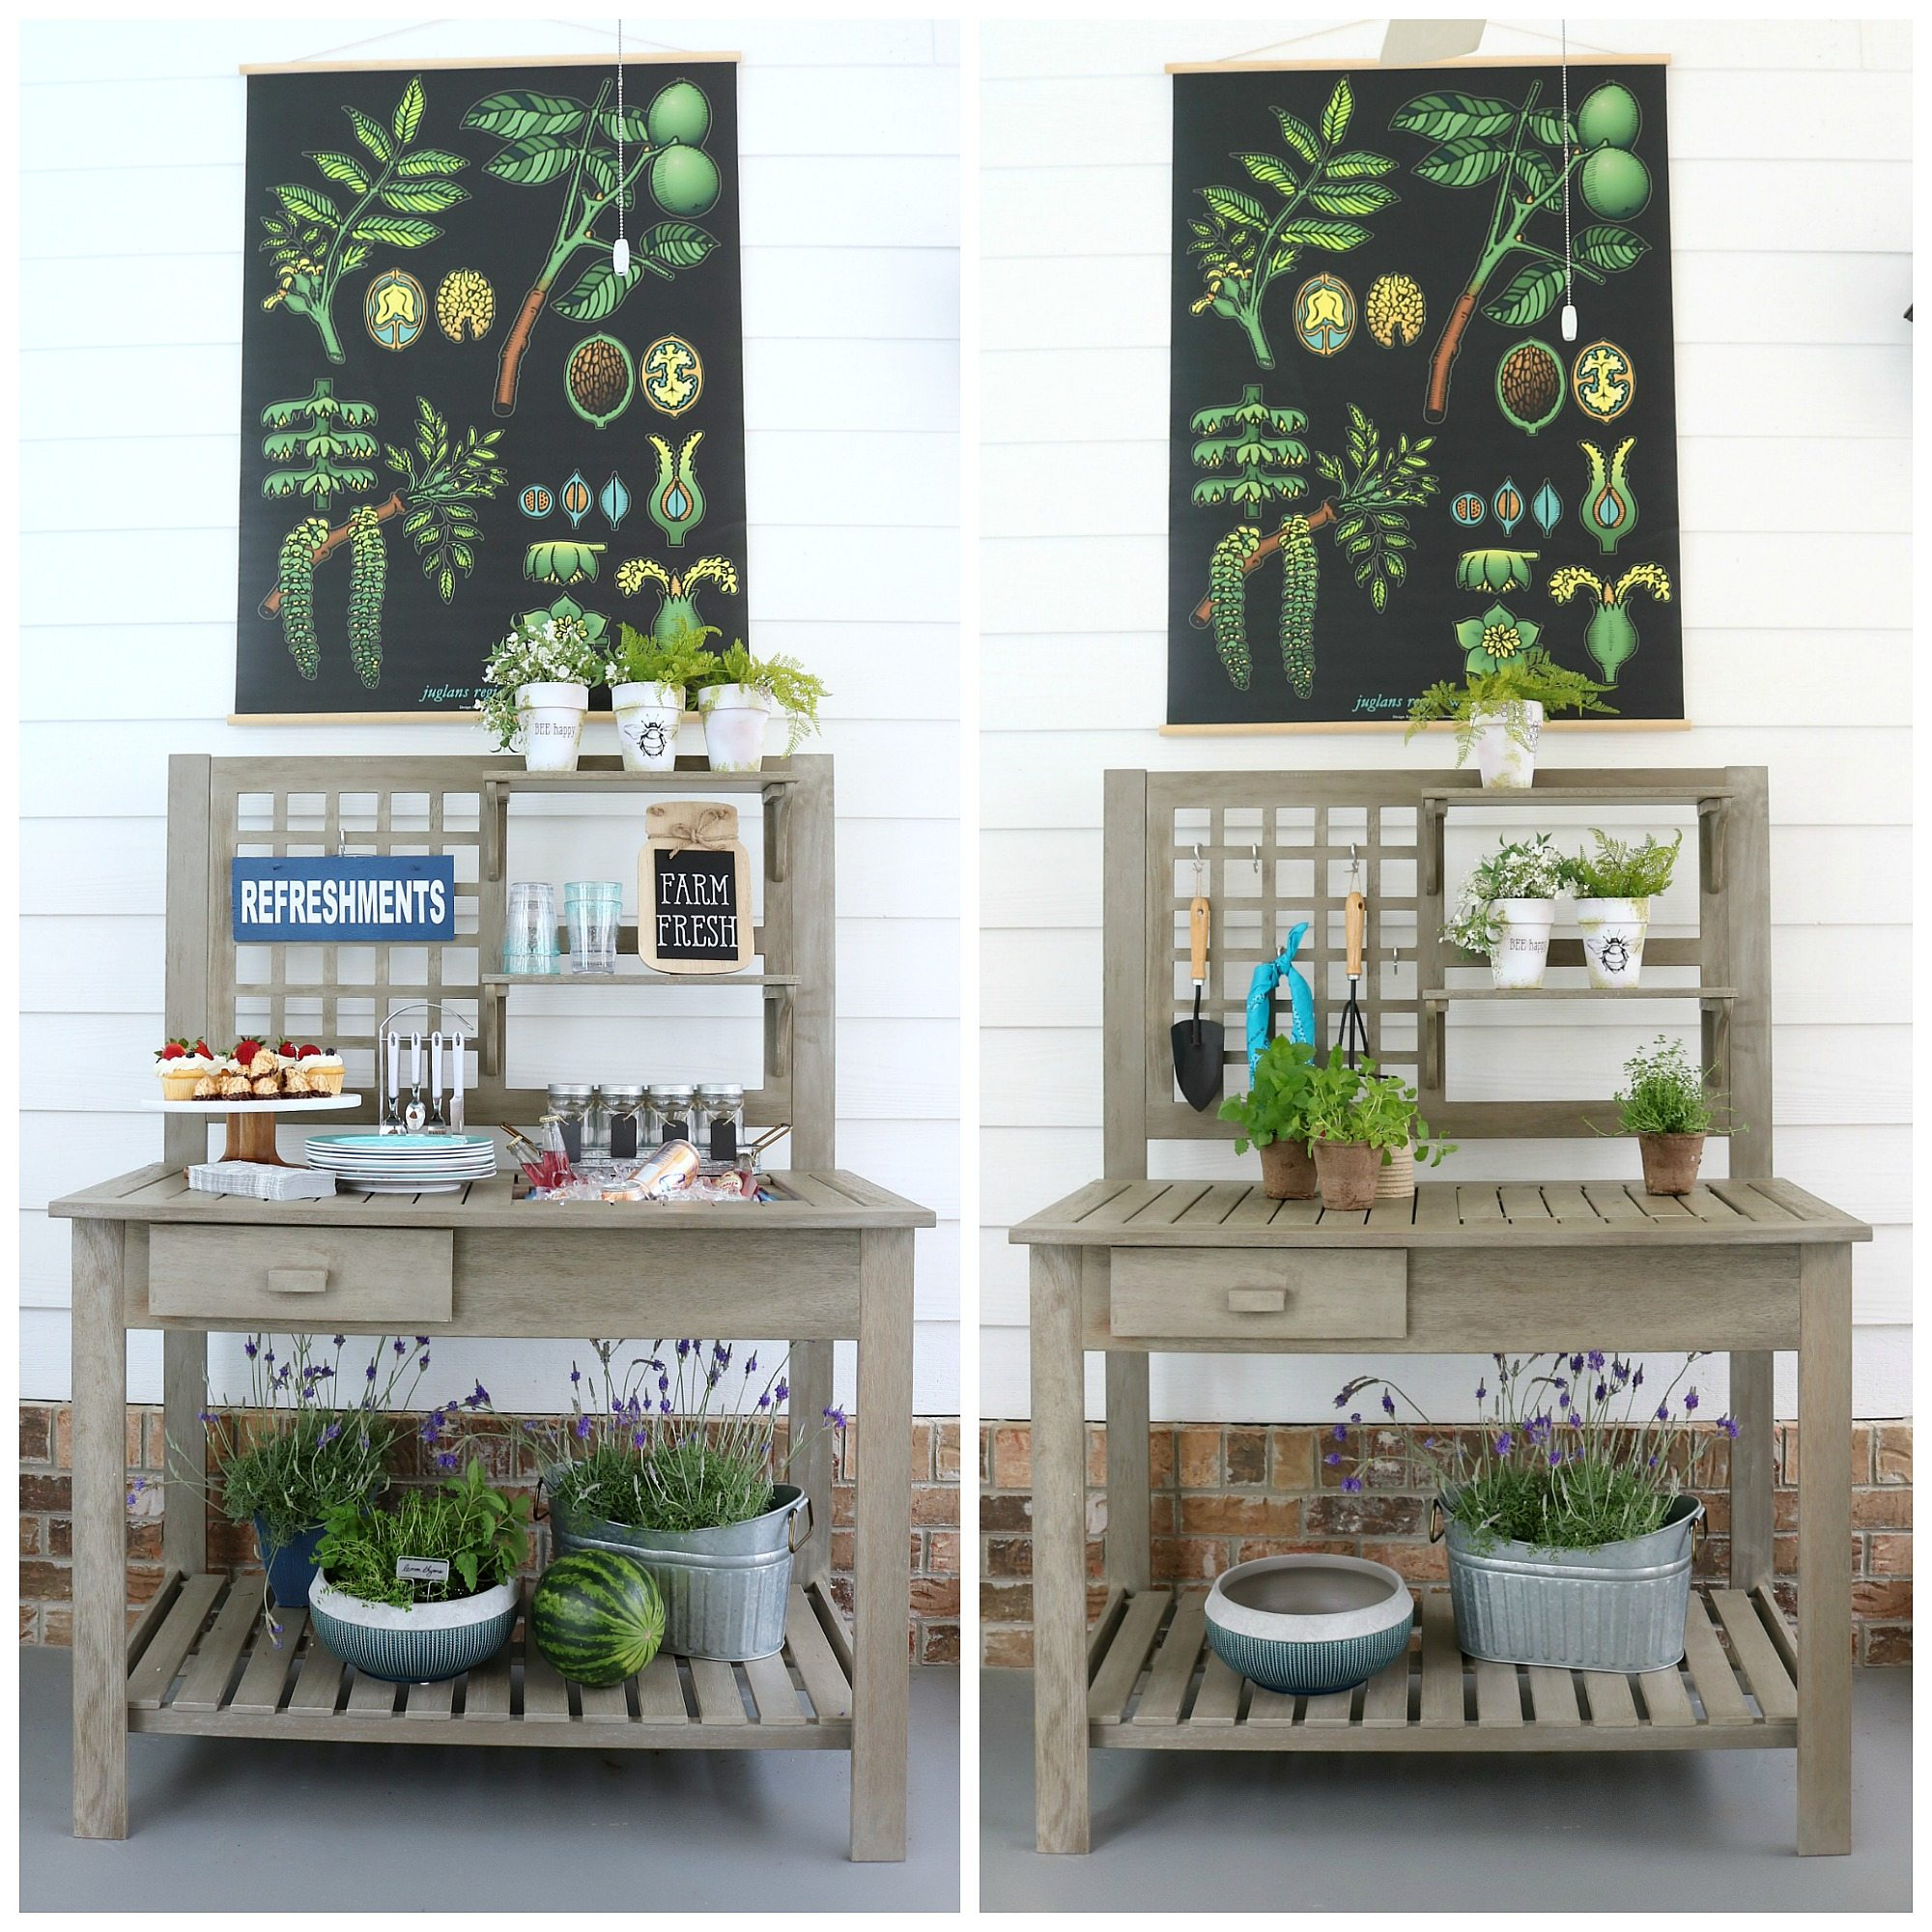 Multi-use potting bench - From planting flowers to entertaining family and friends, our newest addition to the back porch will help with both! A potting bench makes entertaining fun and planting flowers easy. The Camrose Farmhouse Potting bench from Better Homes & Gardens at Walmart #Ad #farmhouse #garden #pottingbench #rustic